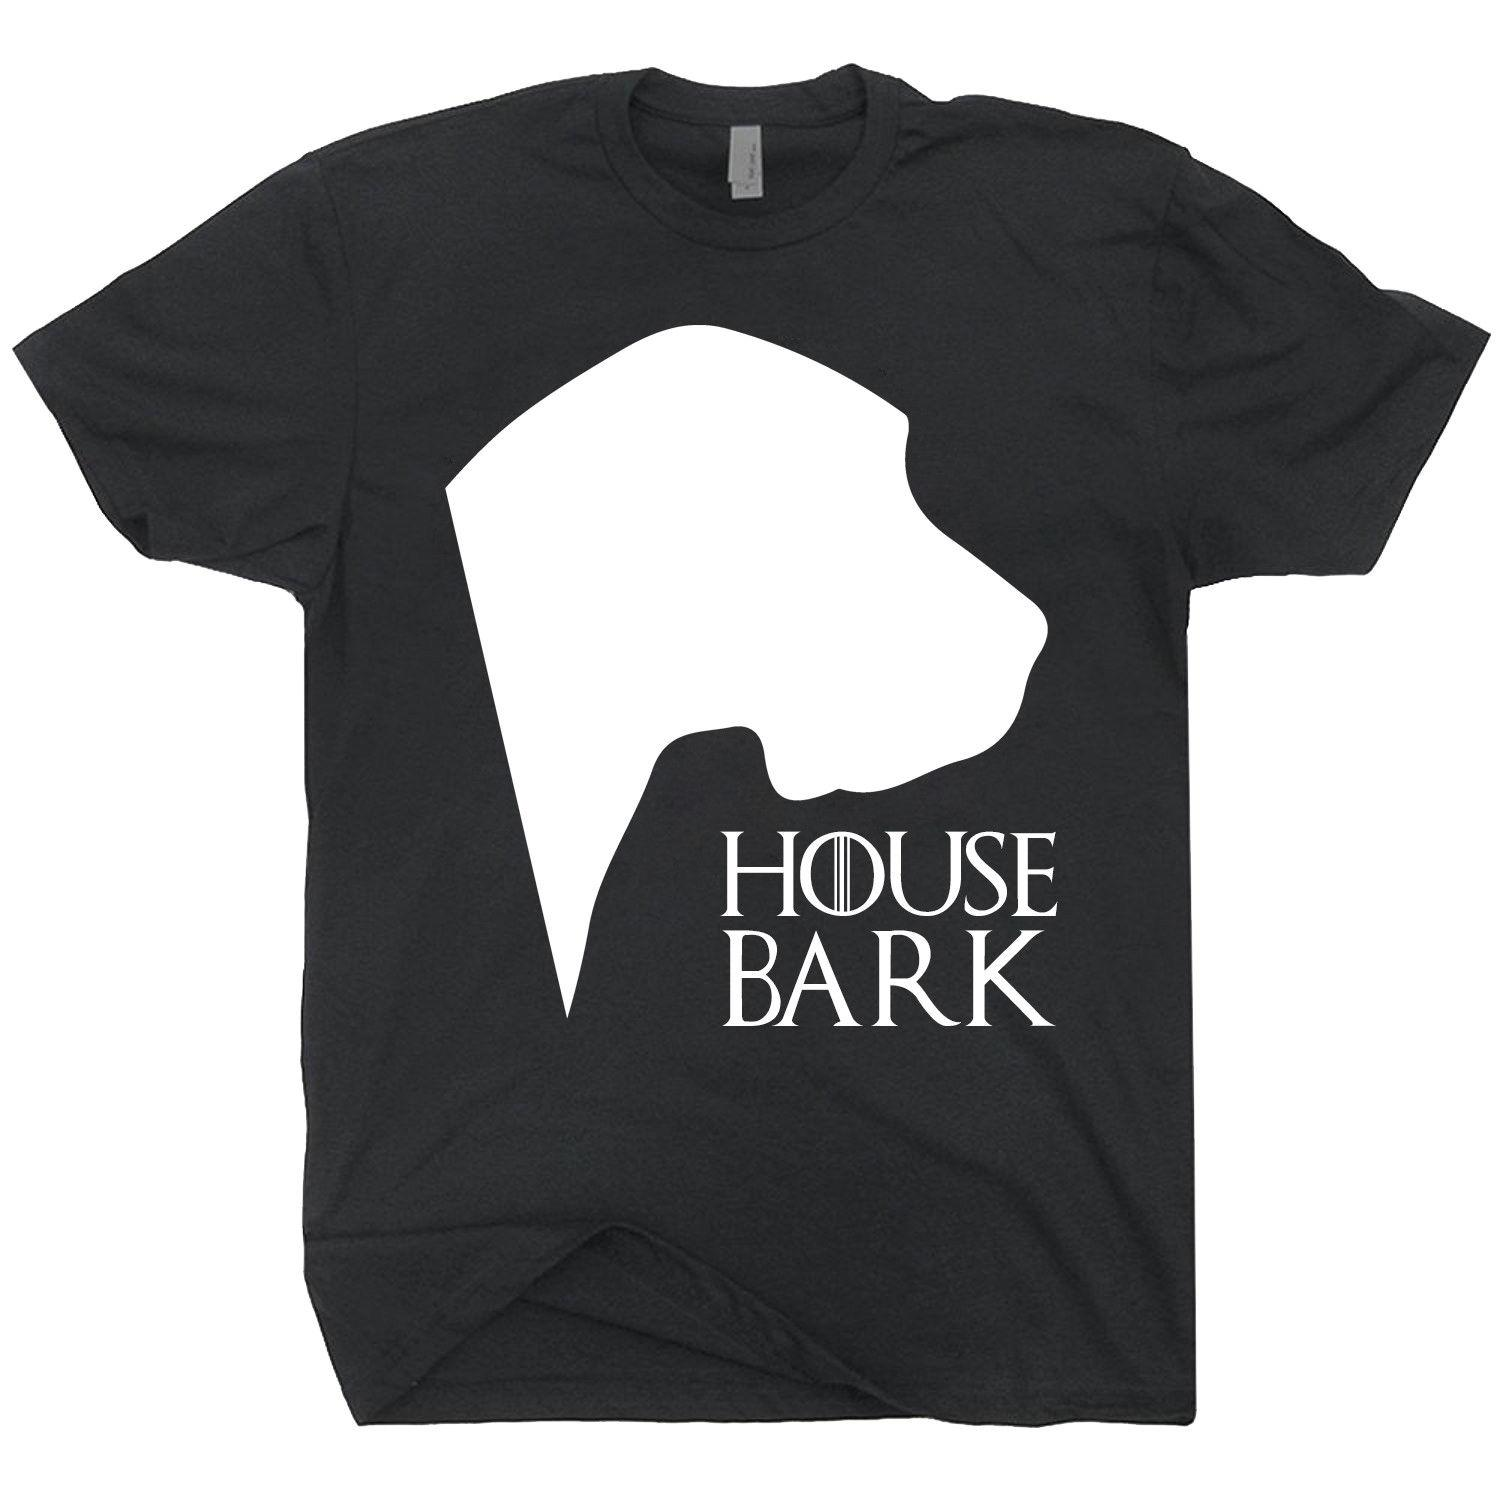 5ee902817 House Bark Great Dane Tee Shirt For Dog Lovers Best Funny T Shirts Really  Cool T Shirts From Playfulltees, $11.01| DHgate.Com